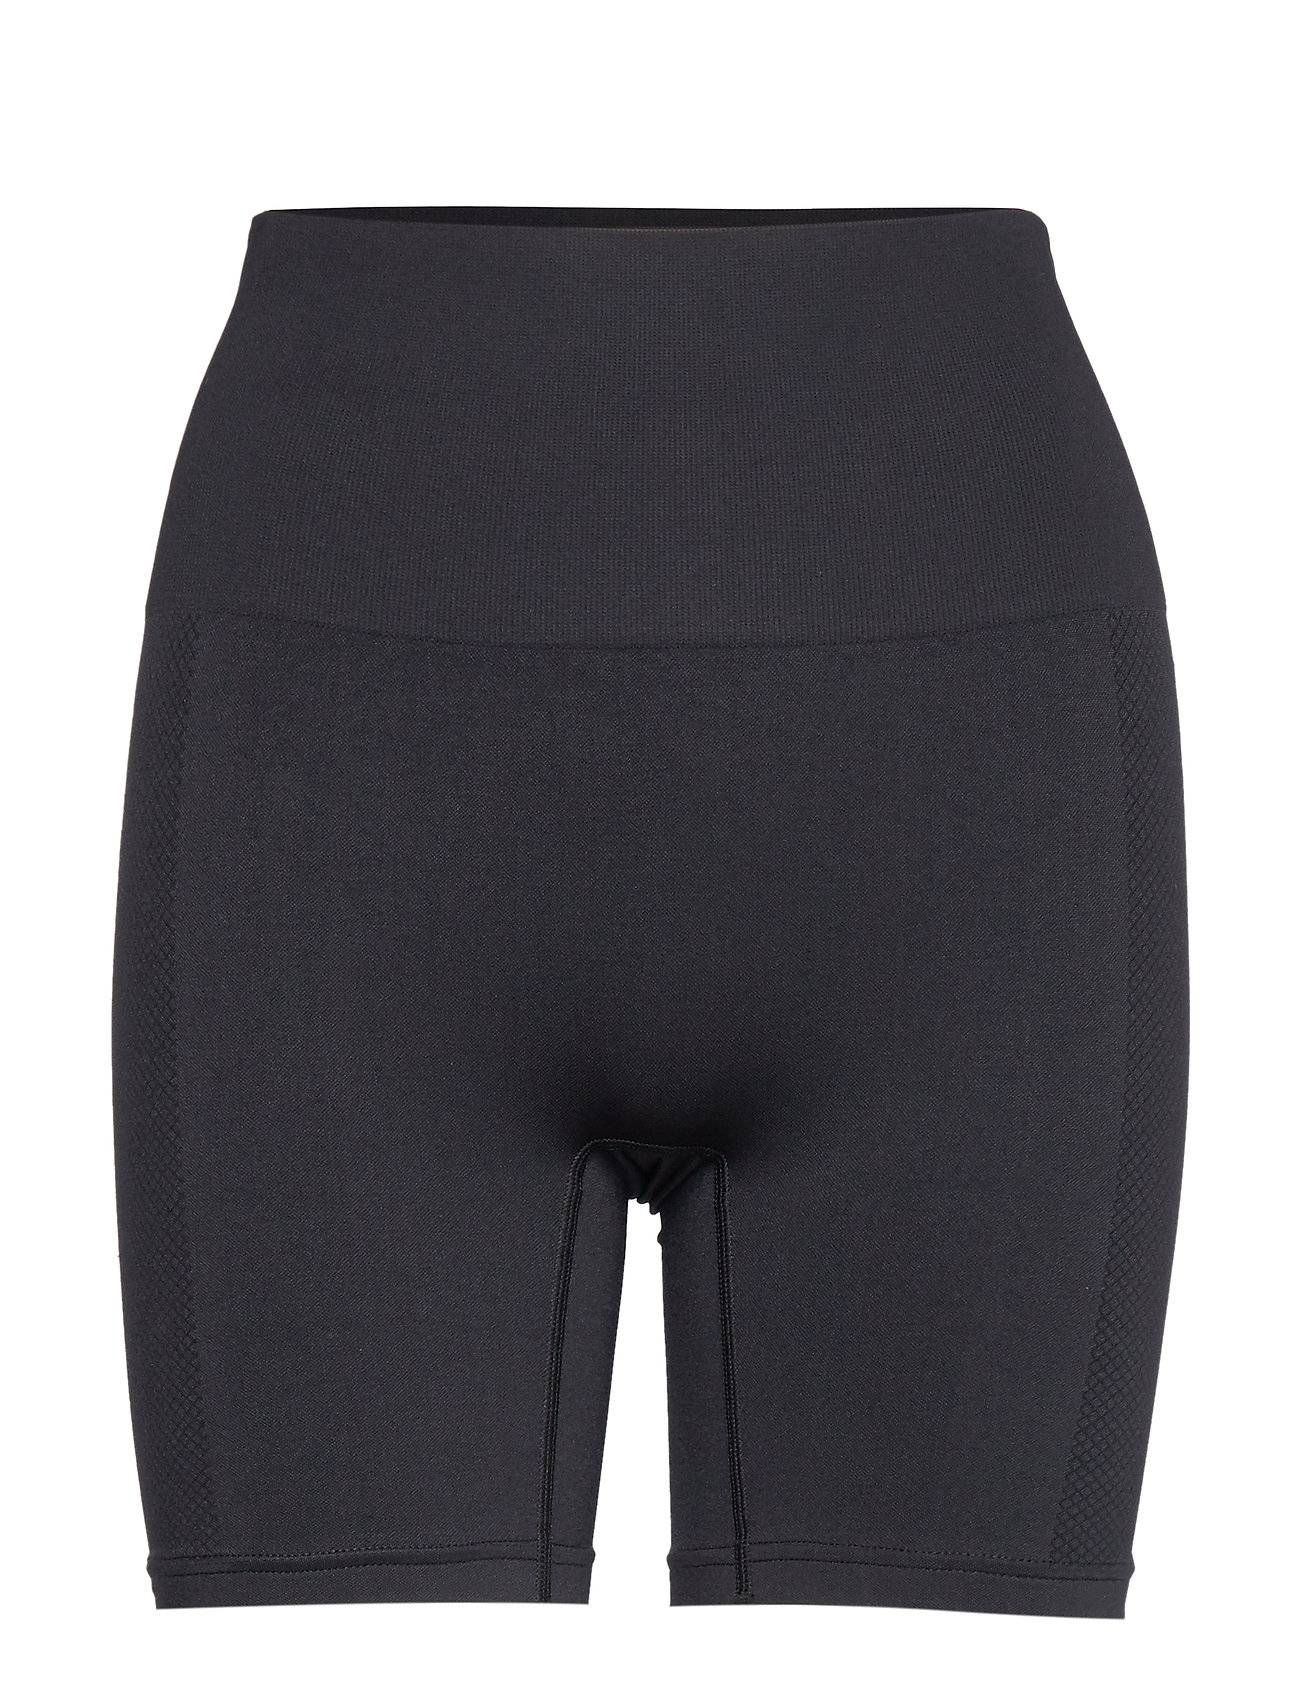 Image of Stay In Place Seamless Biker Tights Shorts Sport Shorts Musta